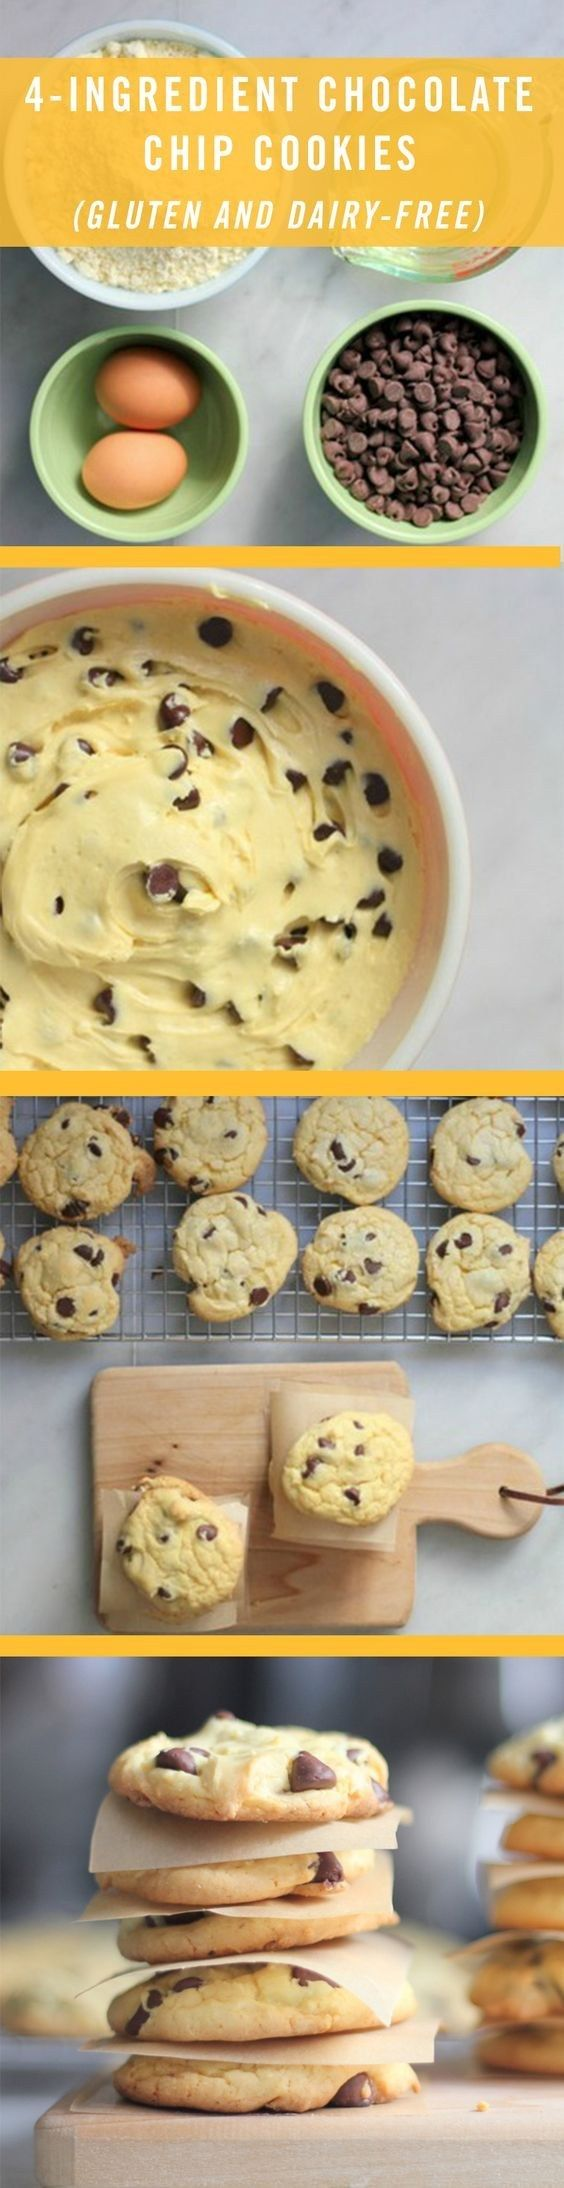 Gluten-Free Chocolate Chip Cookies | 4-Ingredient Desserts For When You're Hungry But Lazy